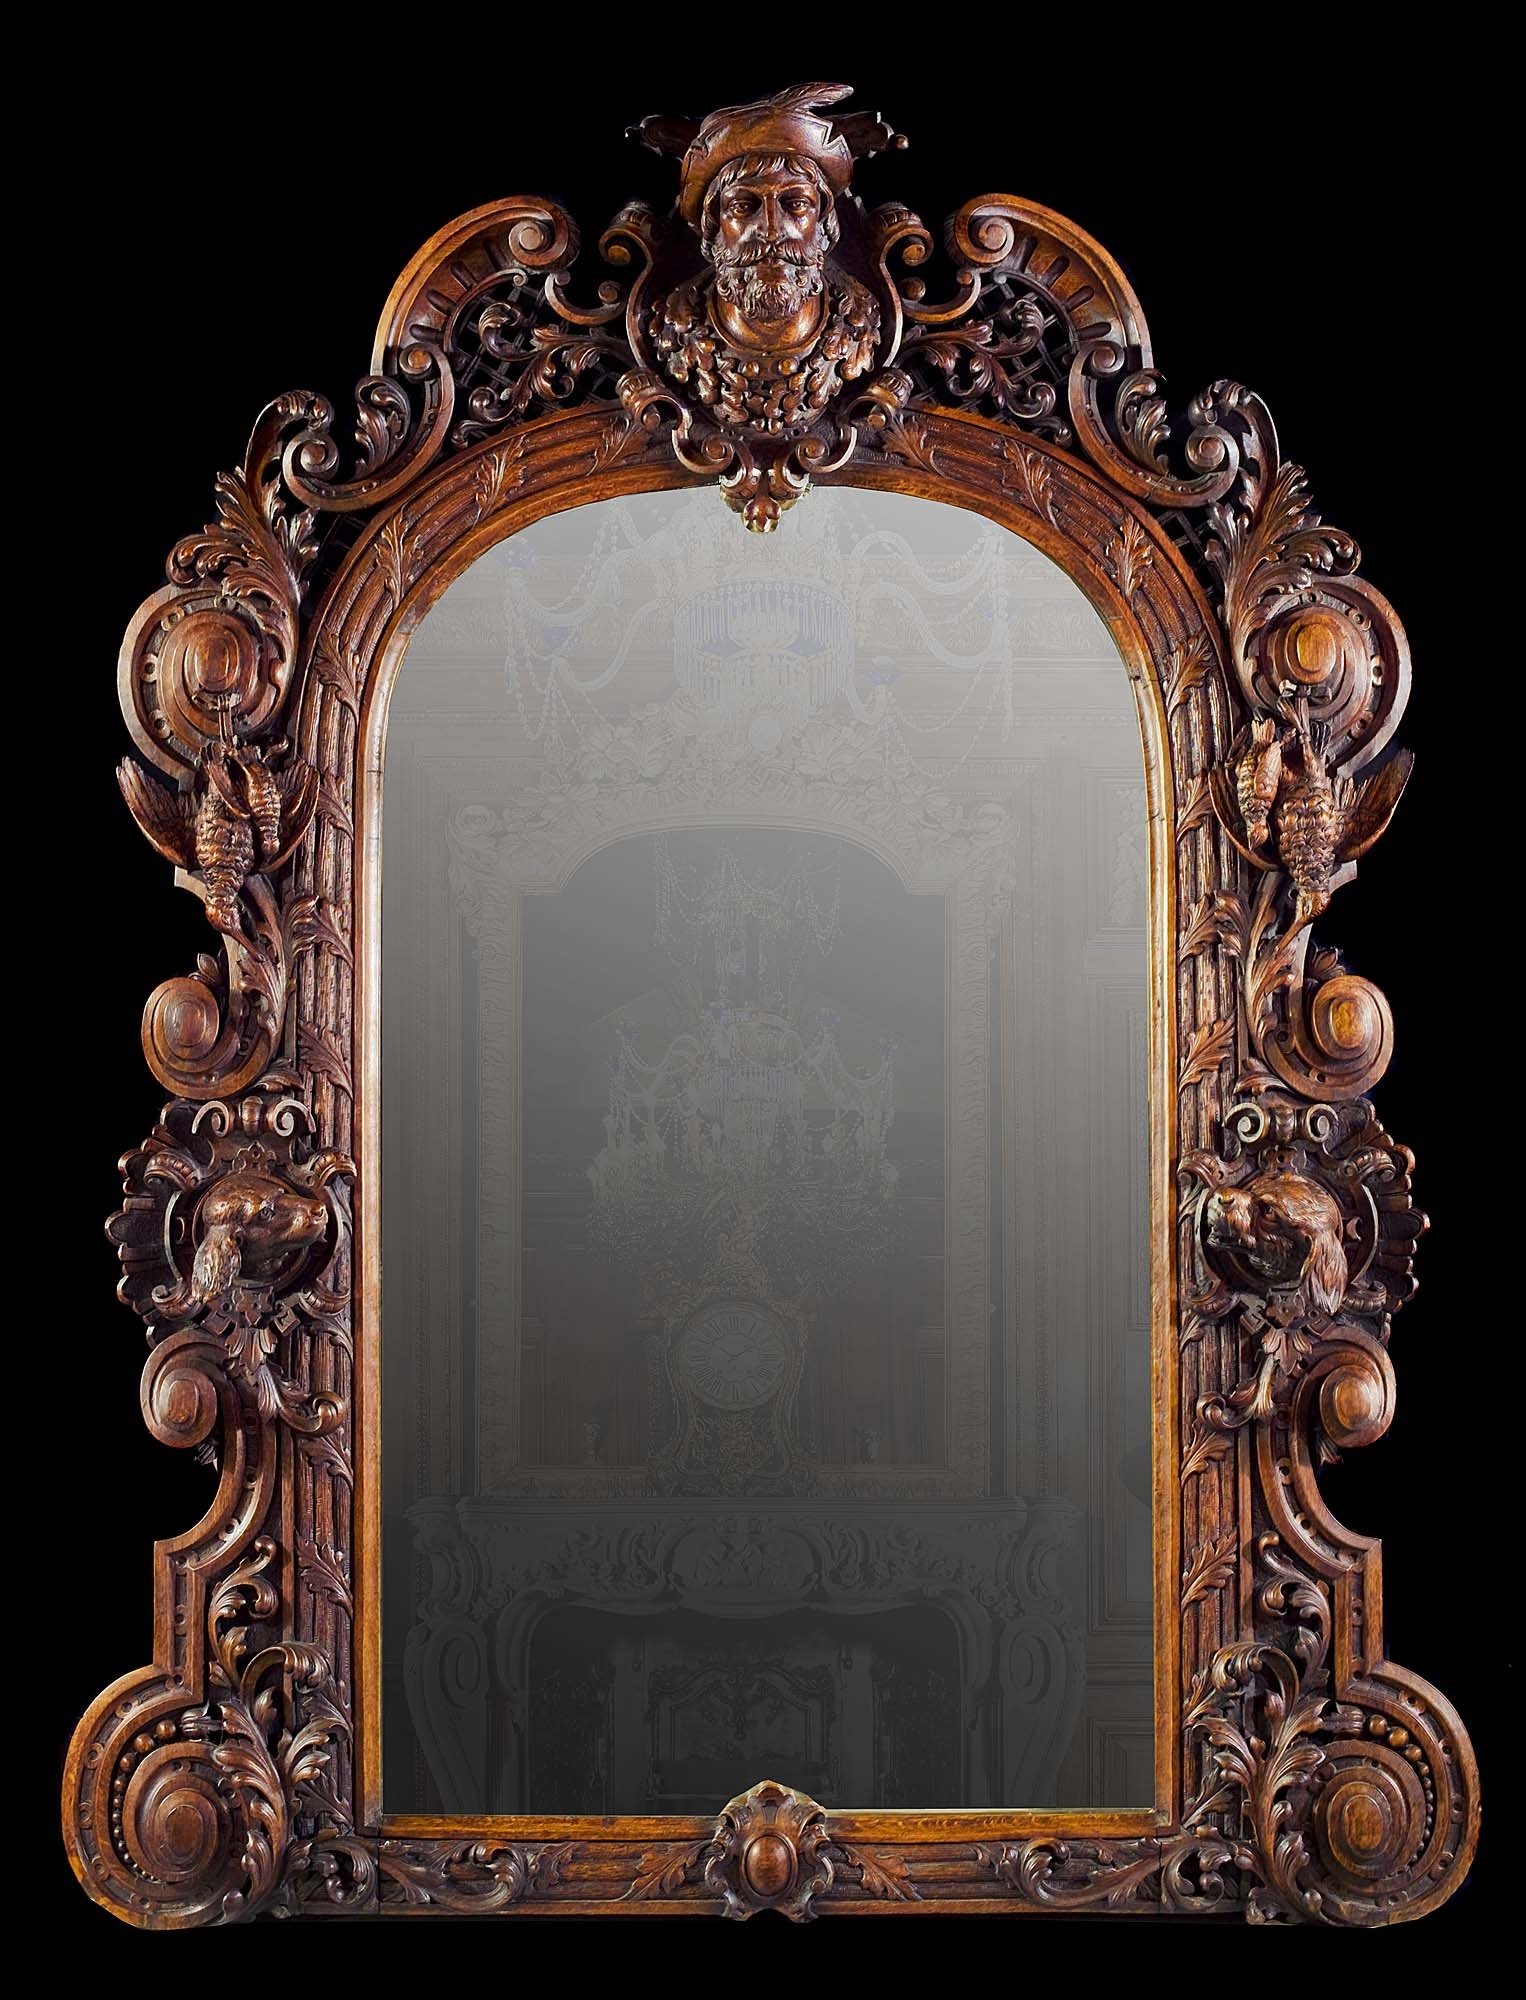 Large Antique Italian Carved Oak Mirror For A Hunting Lodge In Regarding Old Fashioned Mirrors (Image 10 of 15)